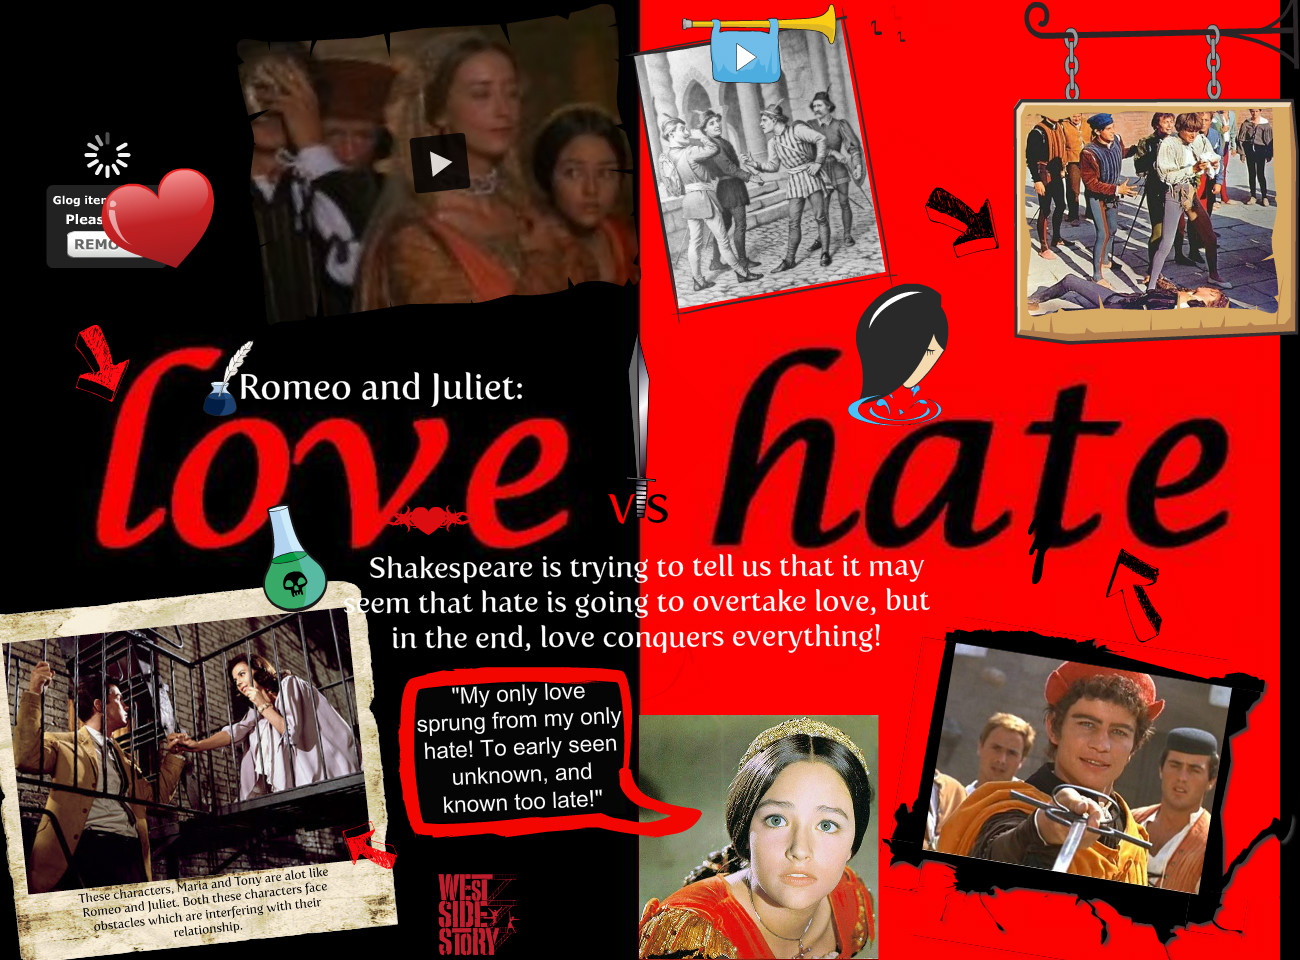 Romeo and juliet essays on love and hate